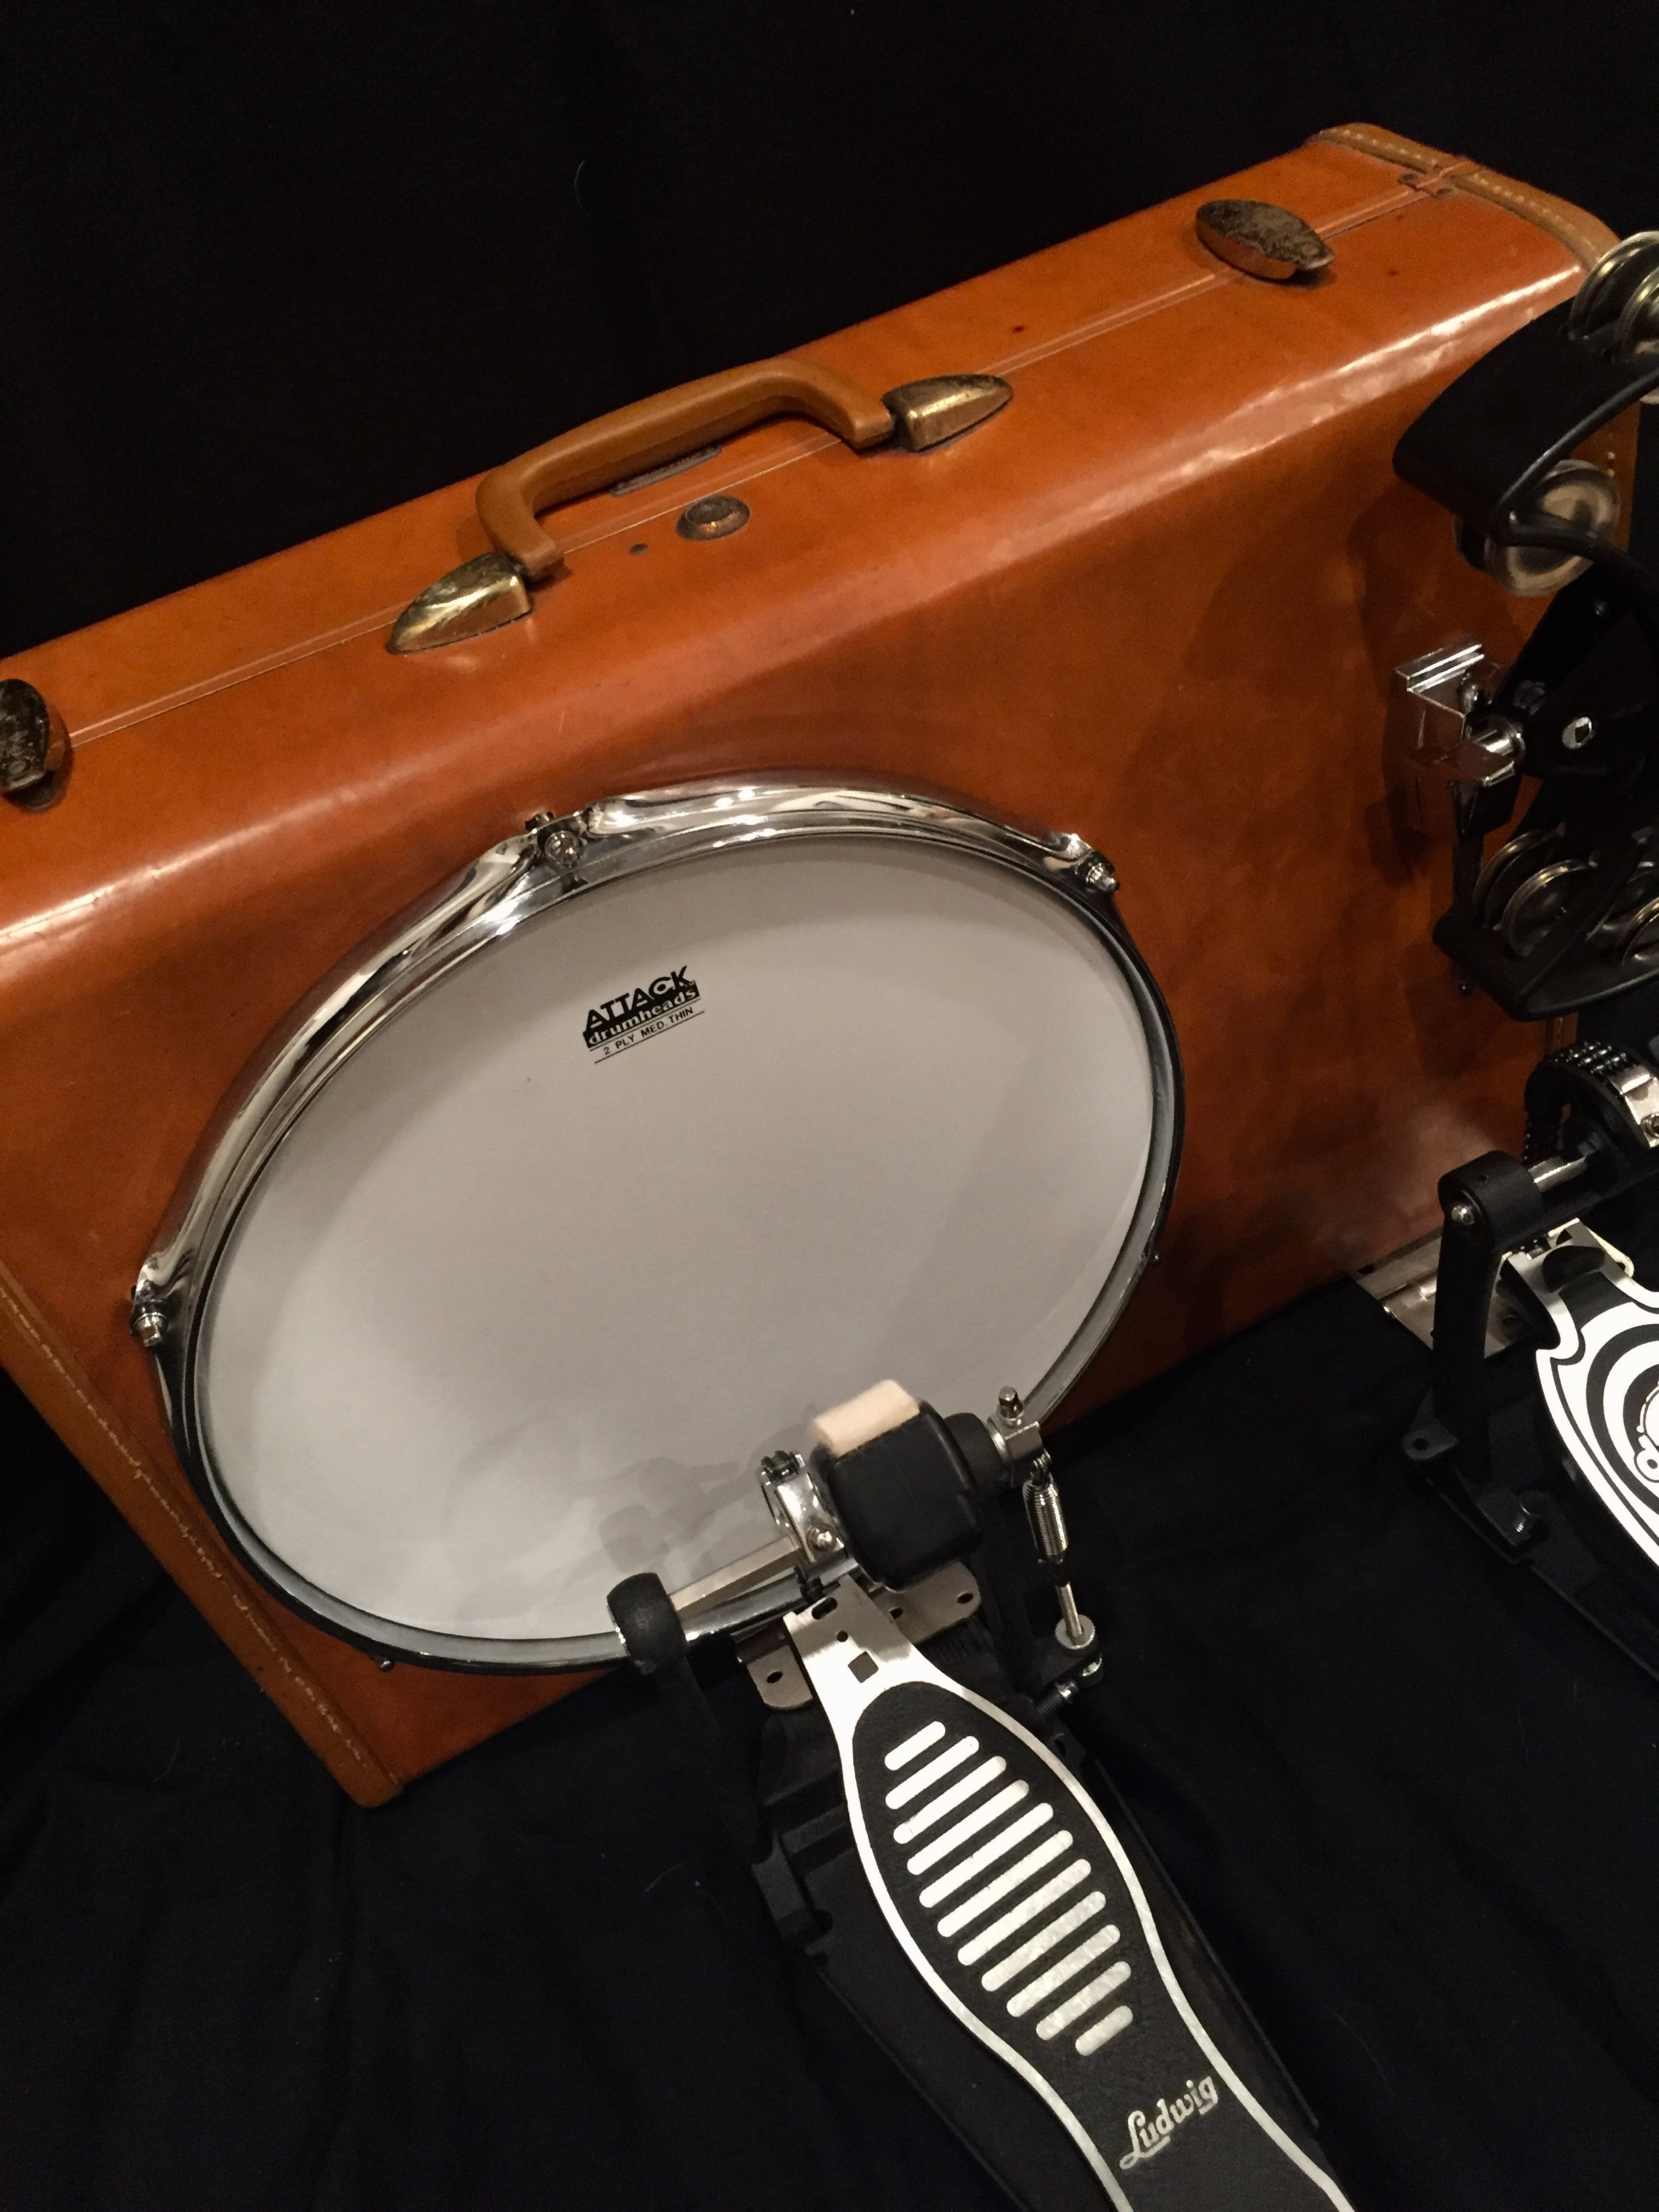 """- 14"""" vintage leatherVERY COOL CHRISTMAS PRESENT FOR THE HUBS! EXCEPTIONALLY NICE SUITCASE AND BEAUTIFULLY CRAFTED AS A BAD ASS SUITCASE KICKDRUM. SO HAPPY WITH THIS DRUM AND THE BEST CUSTOMER SERVICE!JAYNA W. - VIRGINIA, JANUARY 22, 2018"""